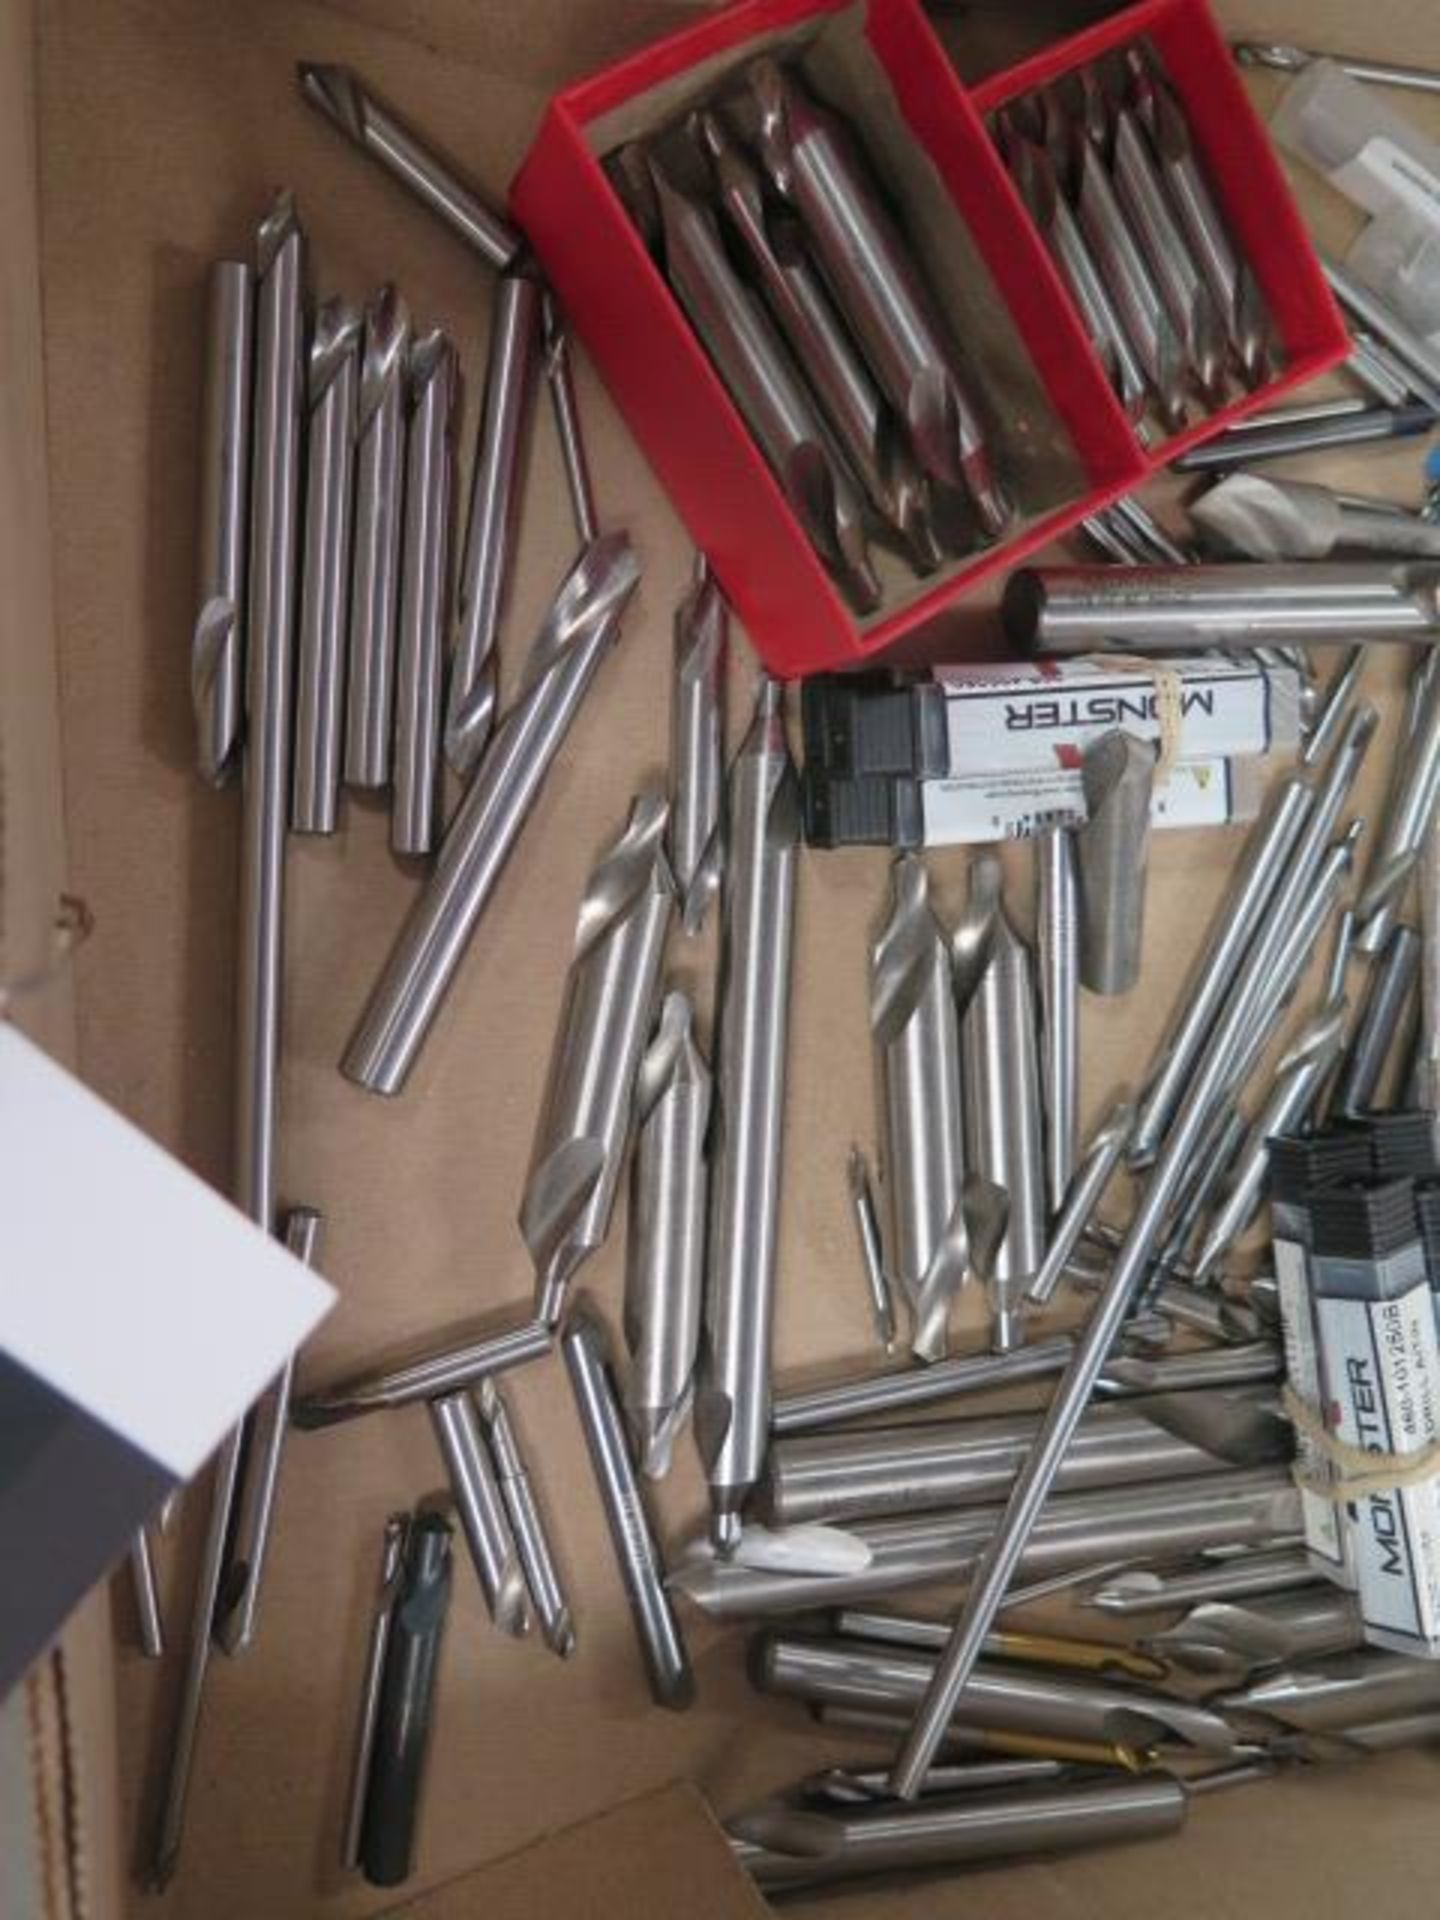 Center Drills, Spot Srills and Countersinks (SOLD AS-IS - NO WARRANTY) - Image 3 of 6